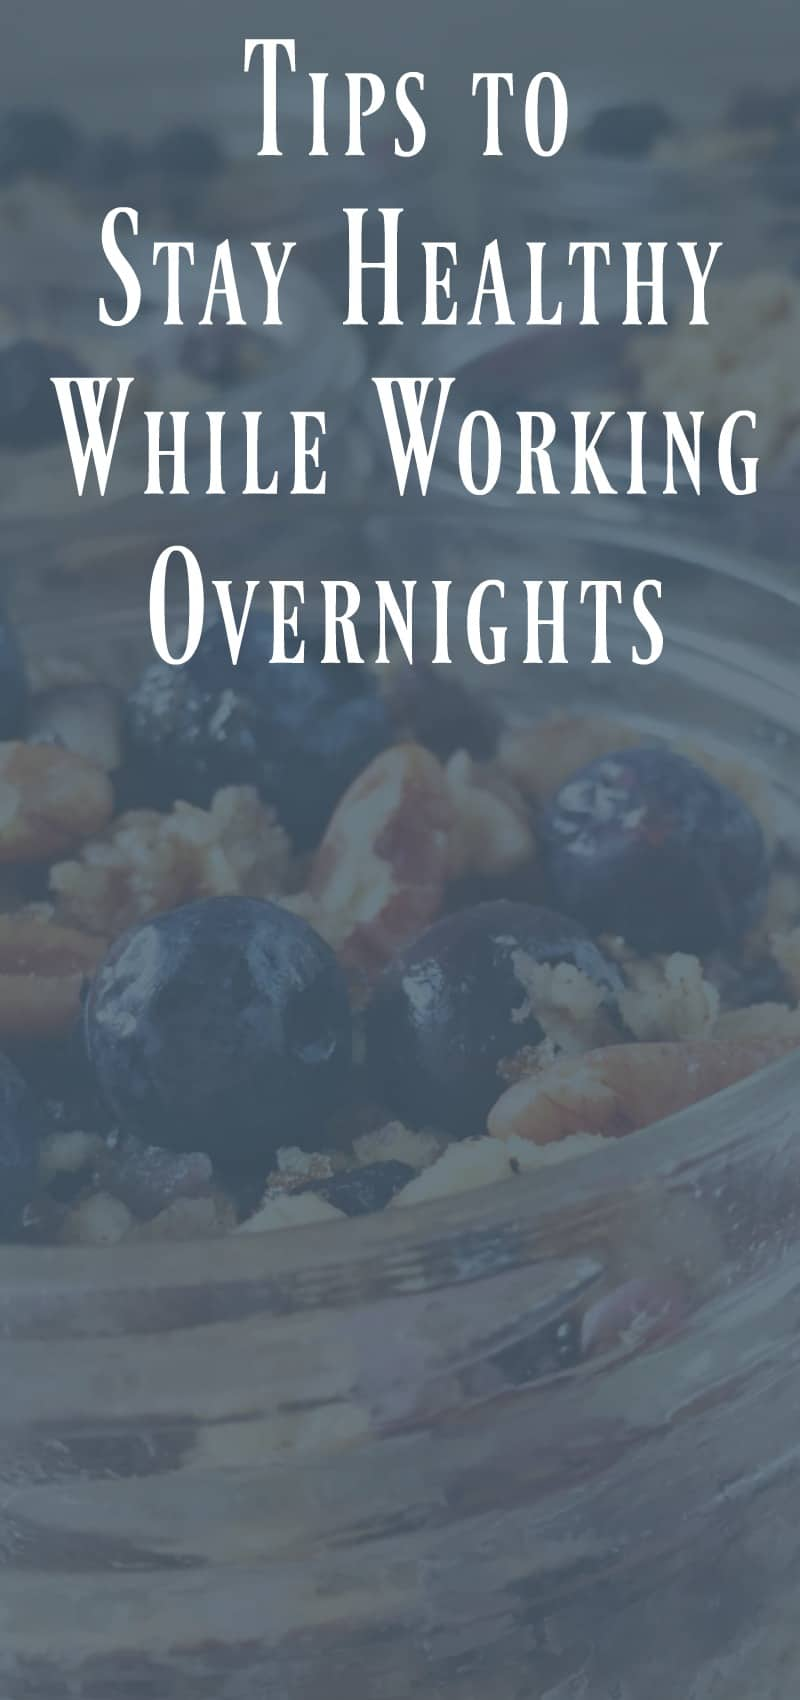 Tips to eat healthy working overnights.